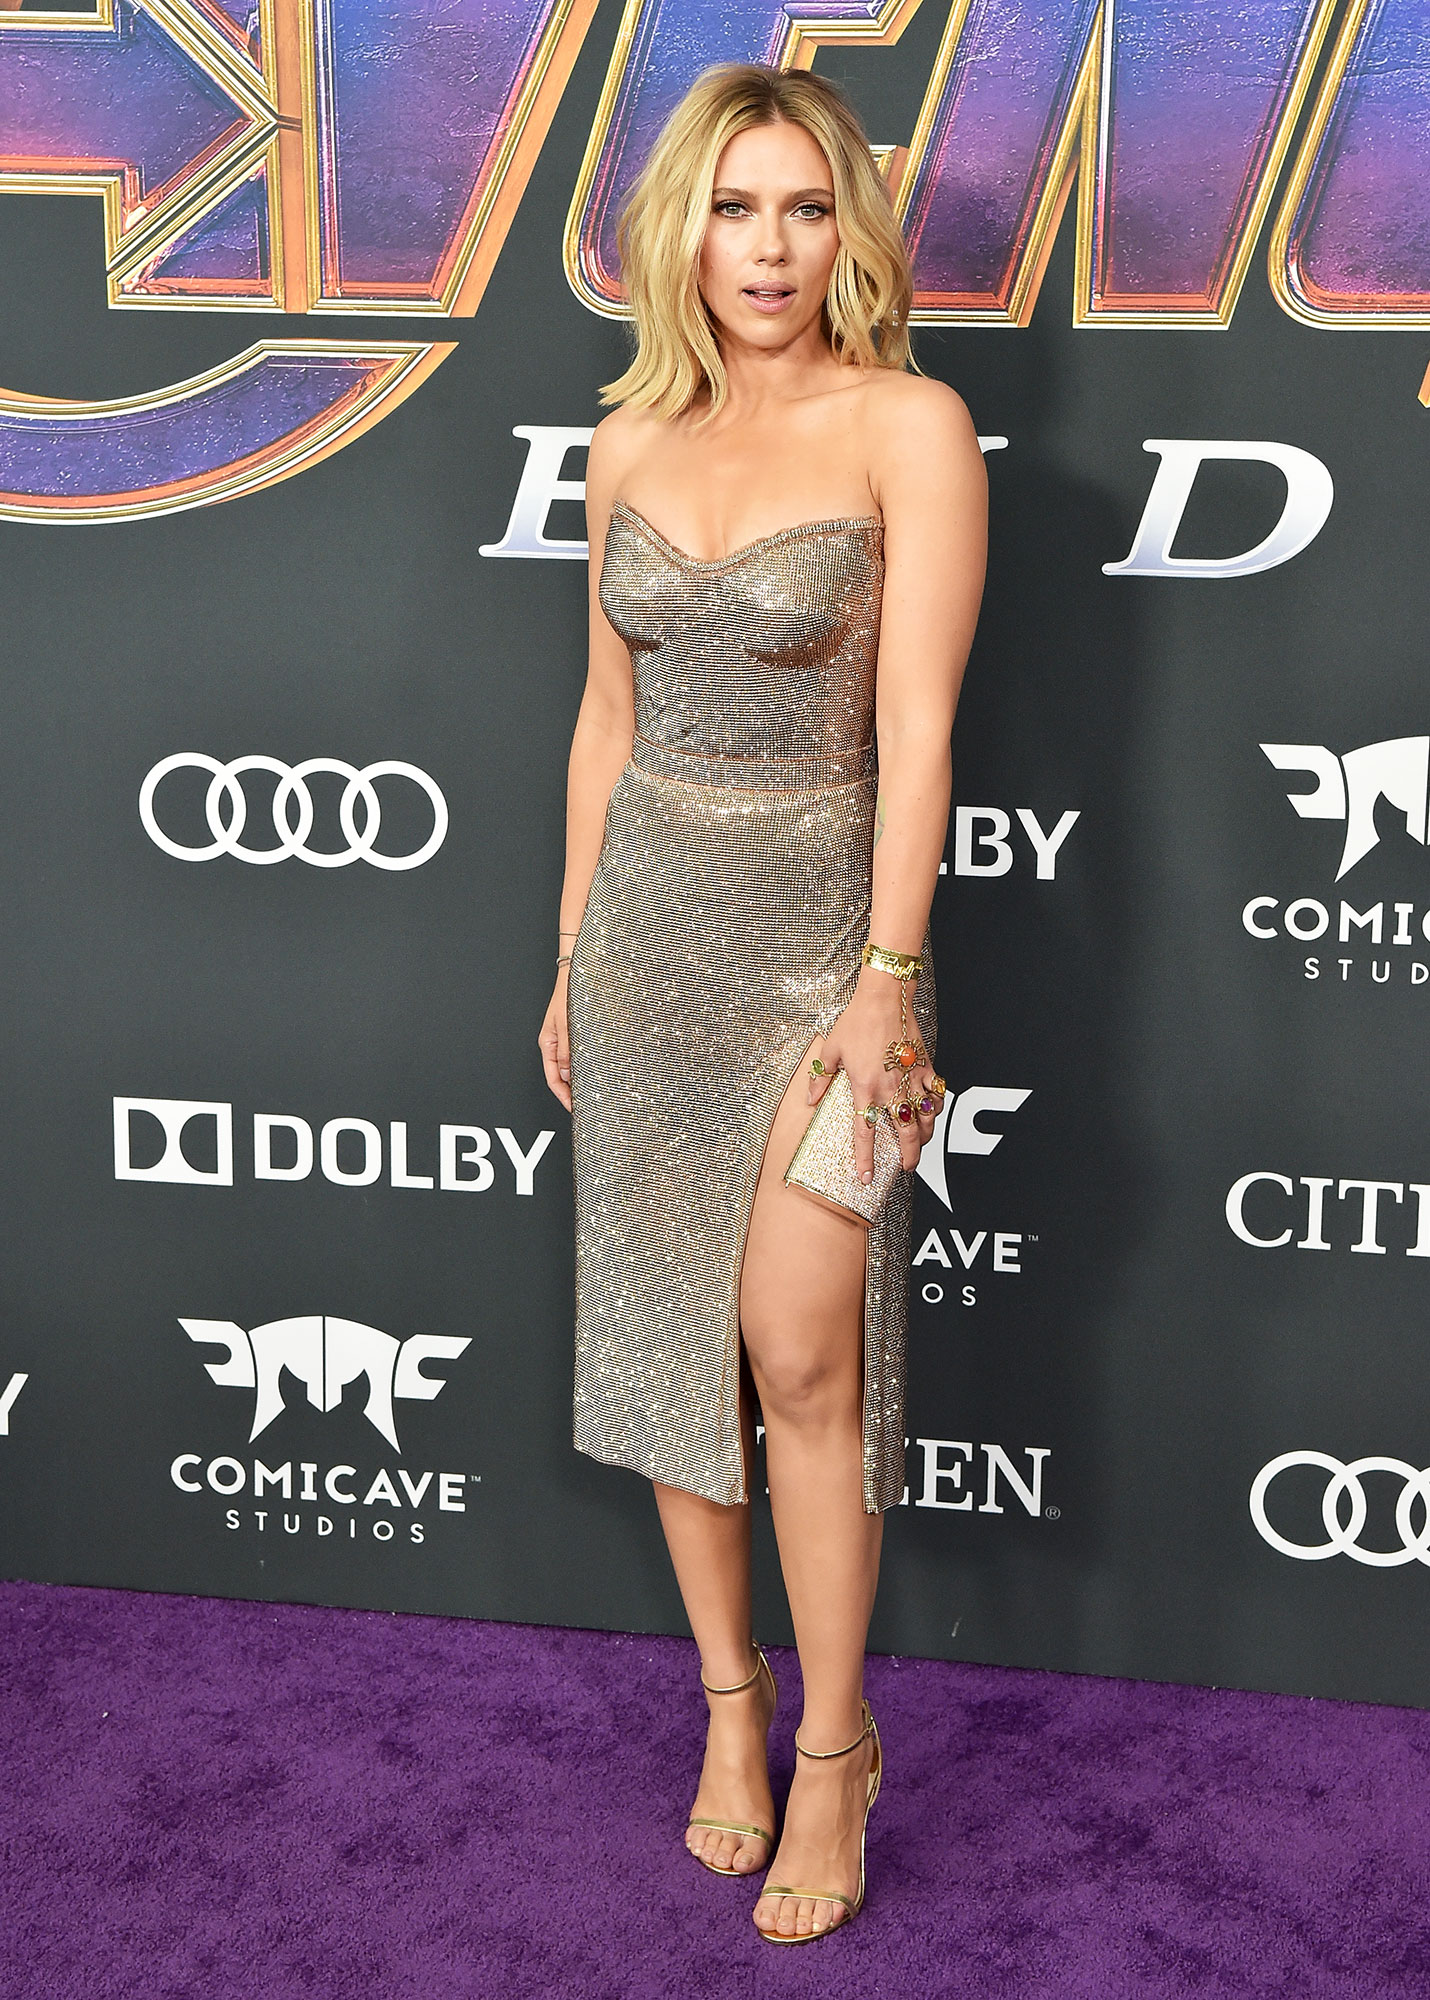 Scarlett Johansson Avengers Premiere - Wearing a sparkly Versace mini with a Jimmy Choo clutch and sandals.